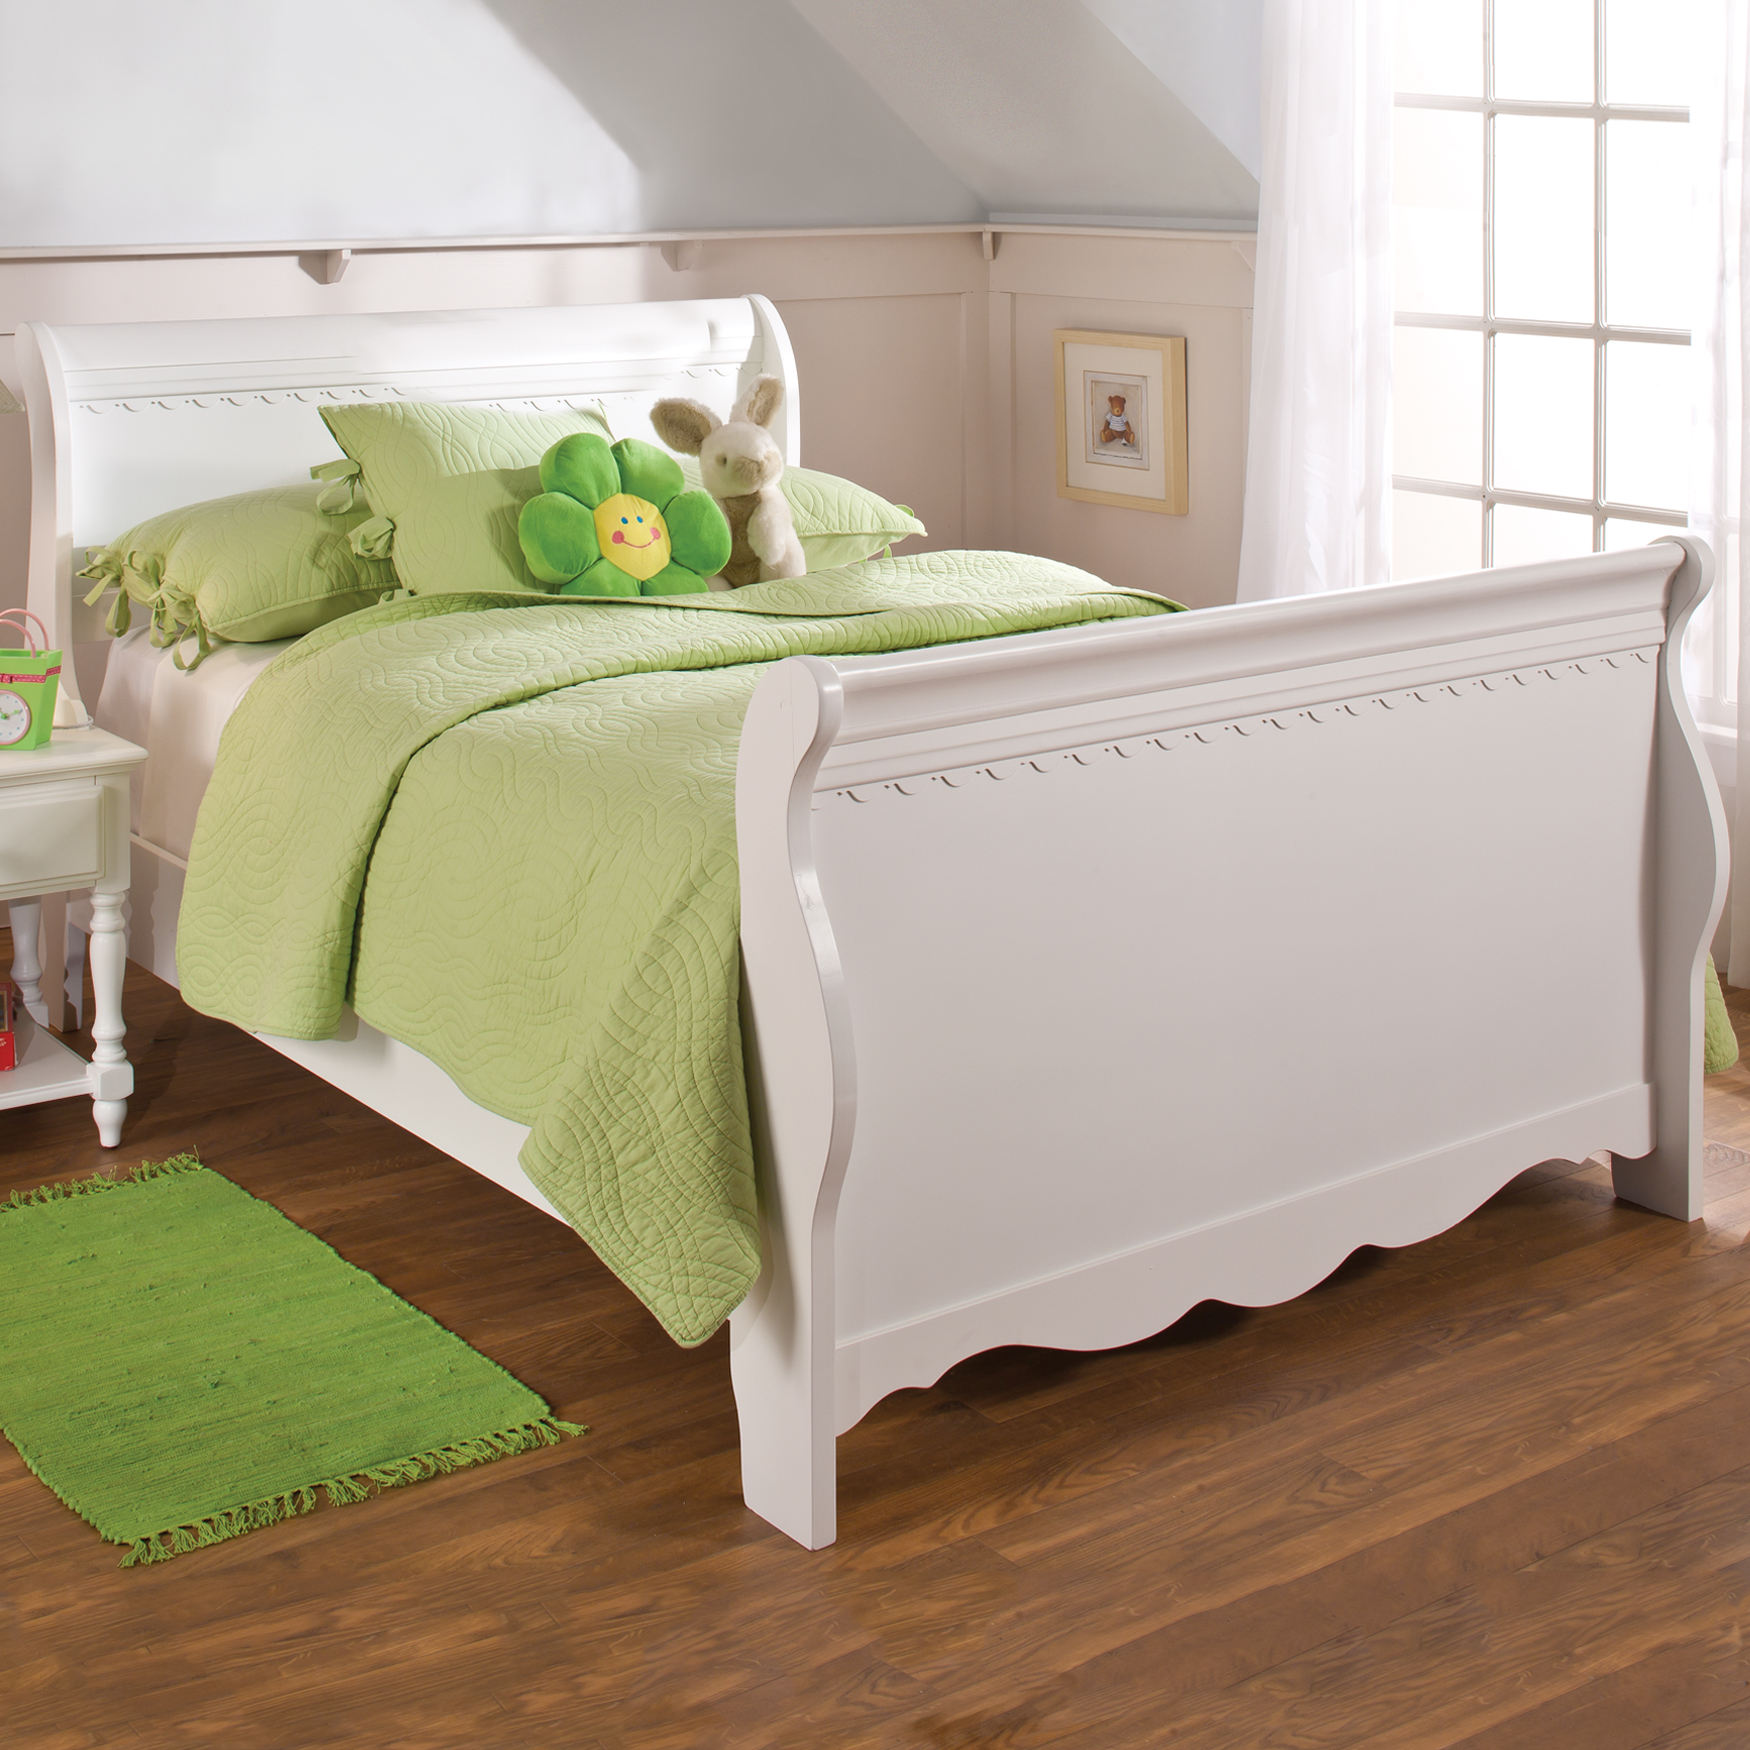 "Full Bed Set with Side Rails, 85½""Lx57¼Wx44""H, WHITE"